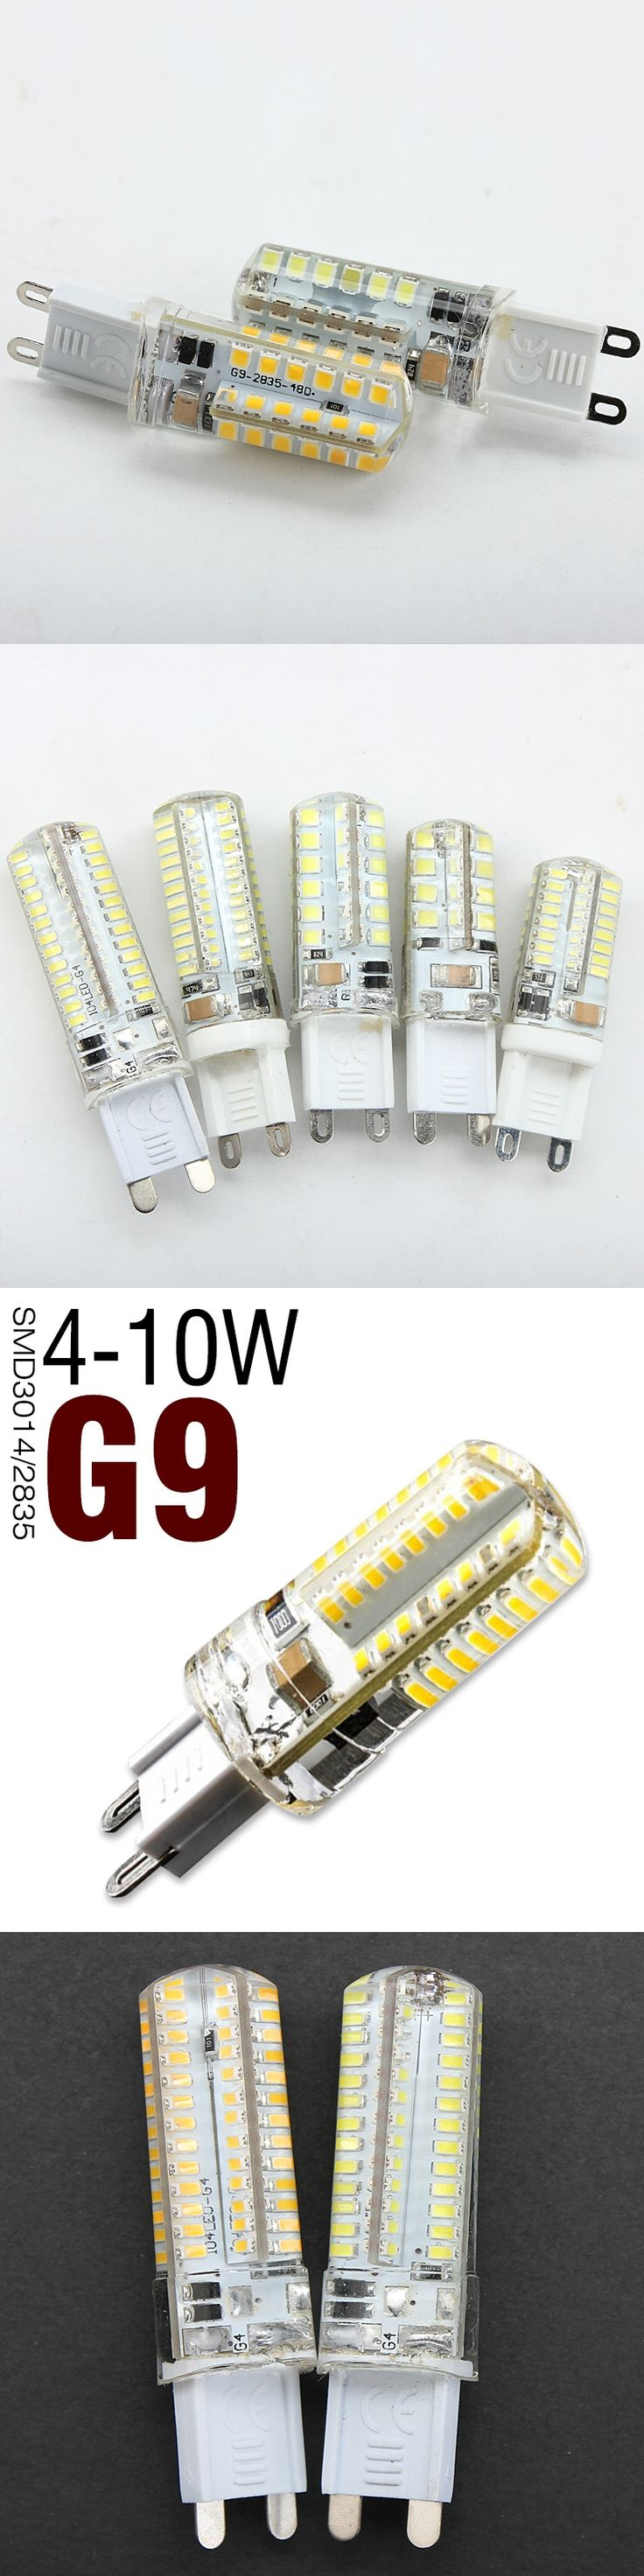 Best 25 g9 led ideas on pinterest g9 led bulb industrial g9 led corn bulb 32leds 48leds 64leds 96leds 104leds 220v smd3014 led lamp warmcold parisarafo Gallery